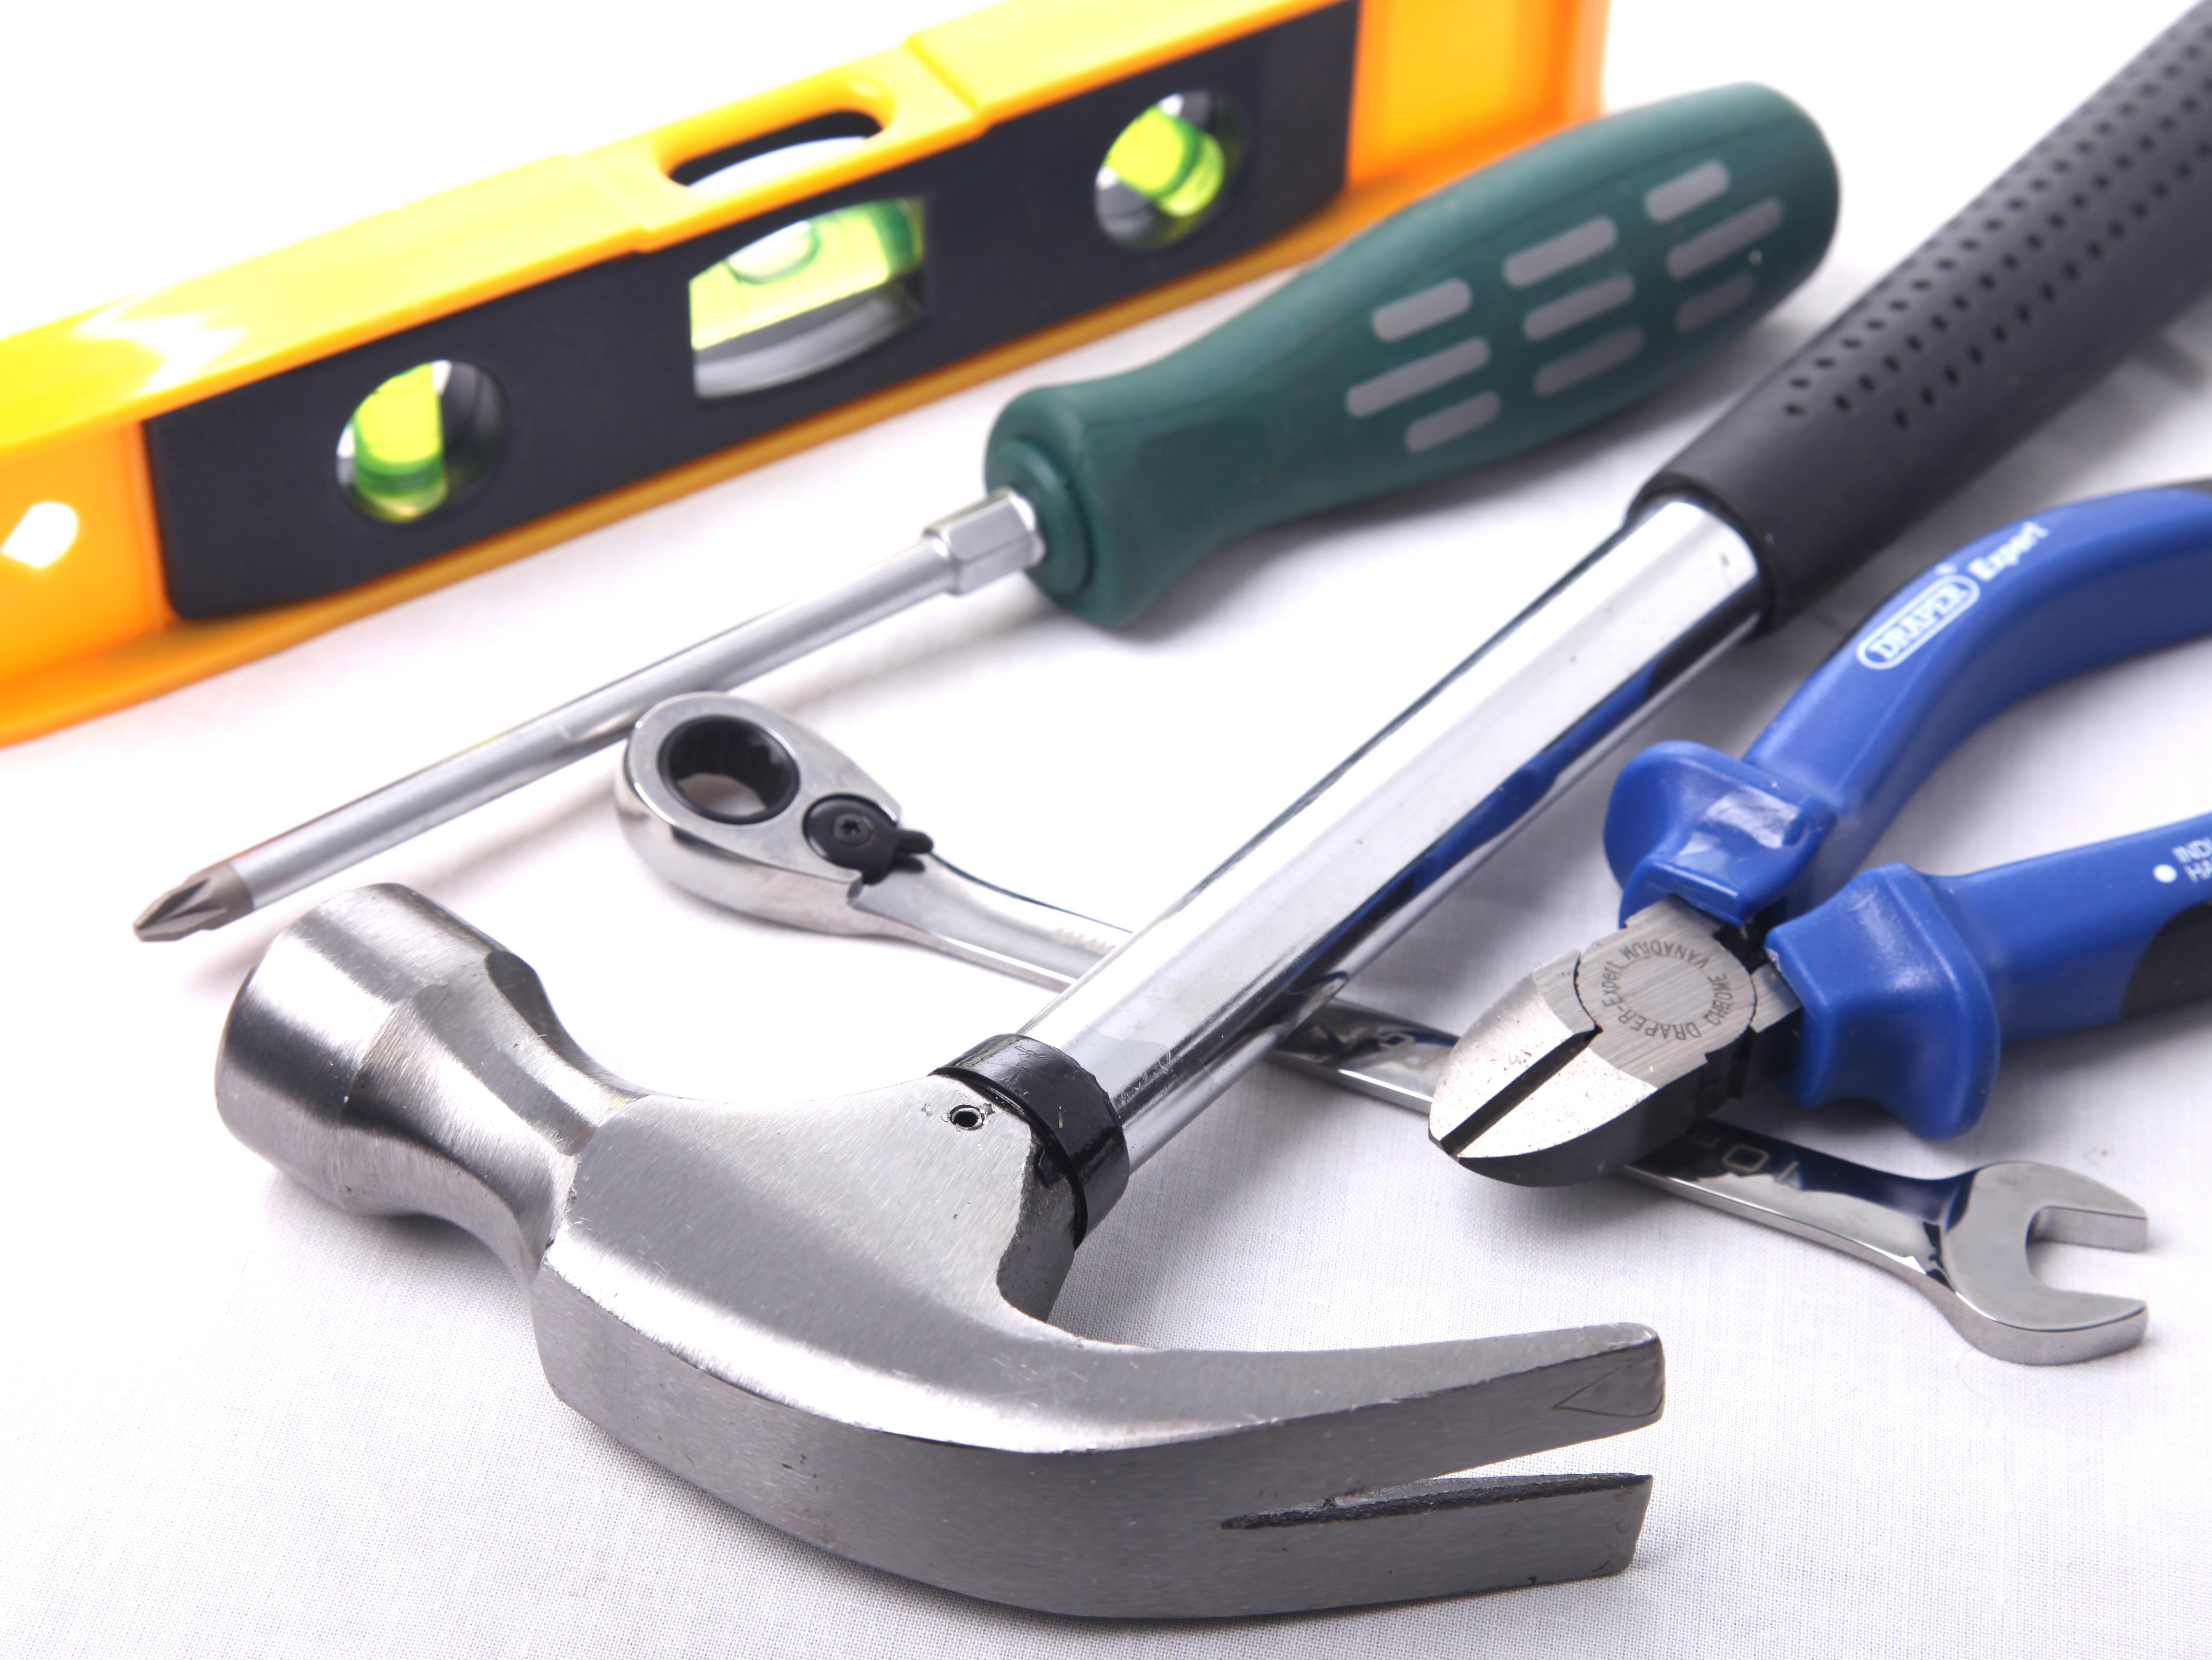 Assorted tools: hammer, screwdriver, torpedo level, wrench, wire cutter.